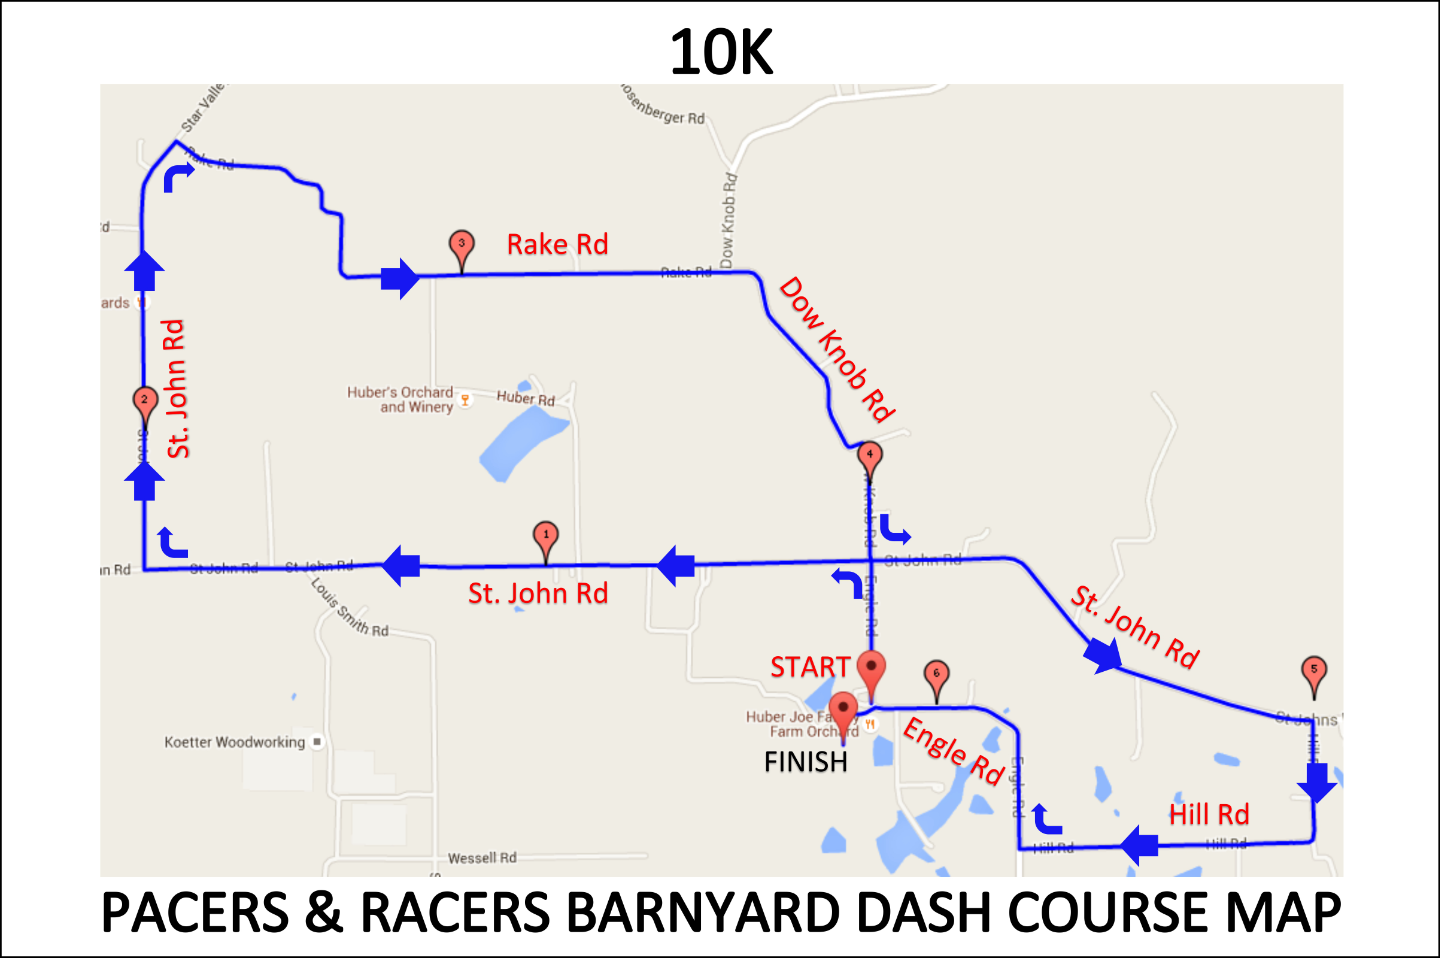 10K Barnyard Dash Course Map